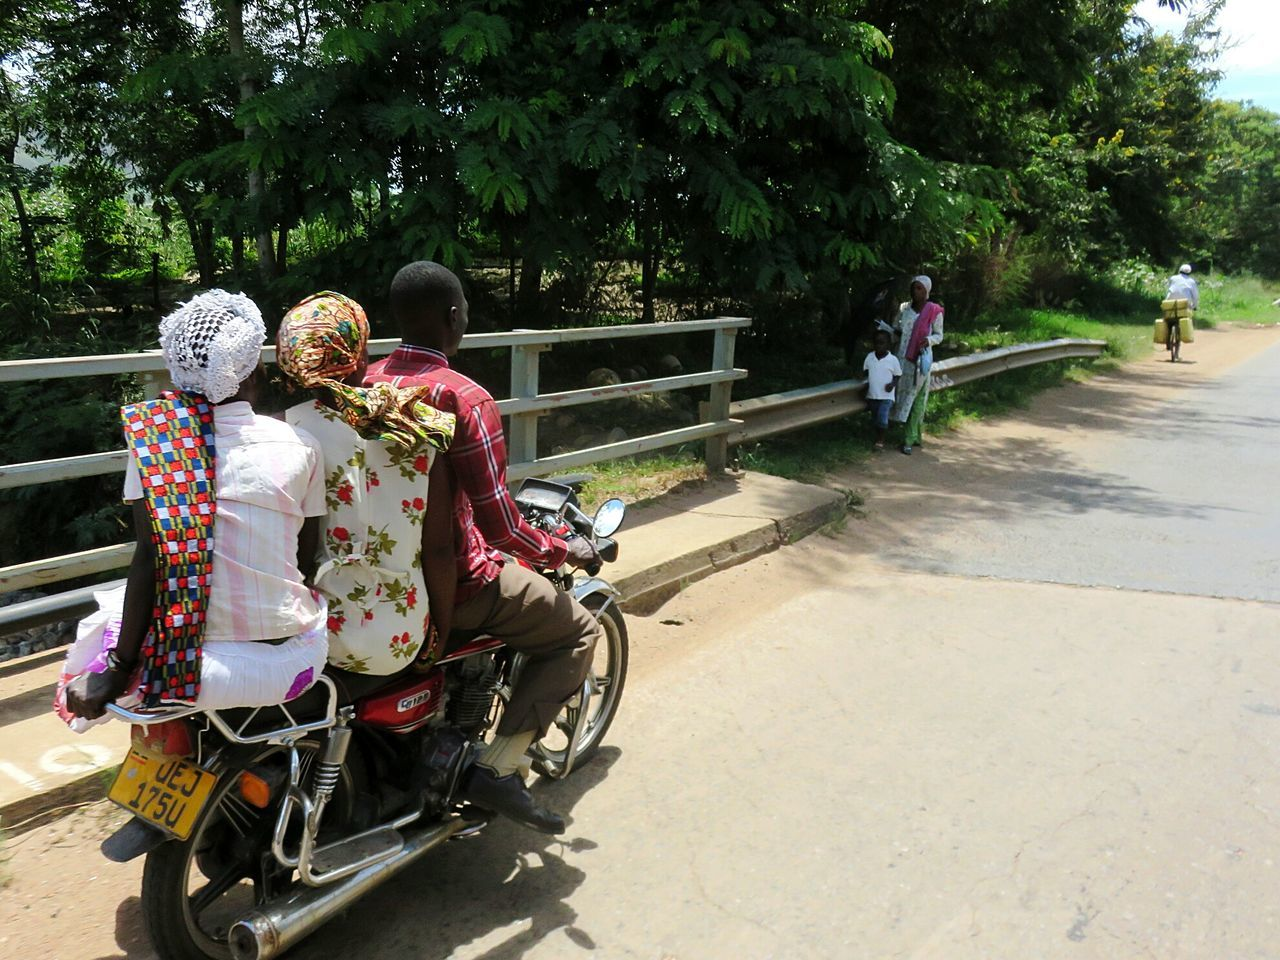 Tree Transportation Motorcycle Mode Of Transport Land Vehicle Day Bicycle Outdoors Women Men Real People Adult People Adults Only Nature Sky Kampala Uganda Let's Go. Together.